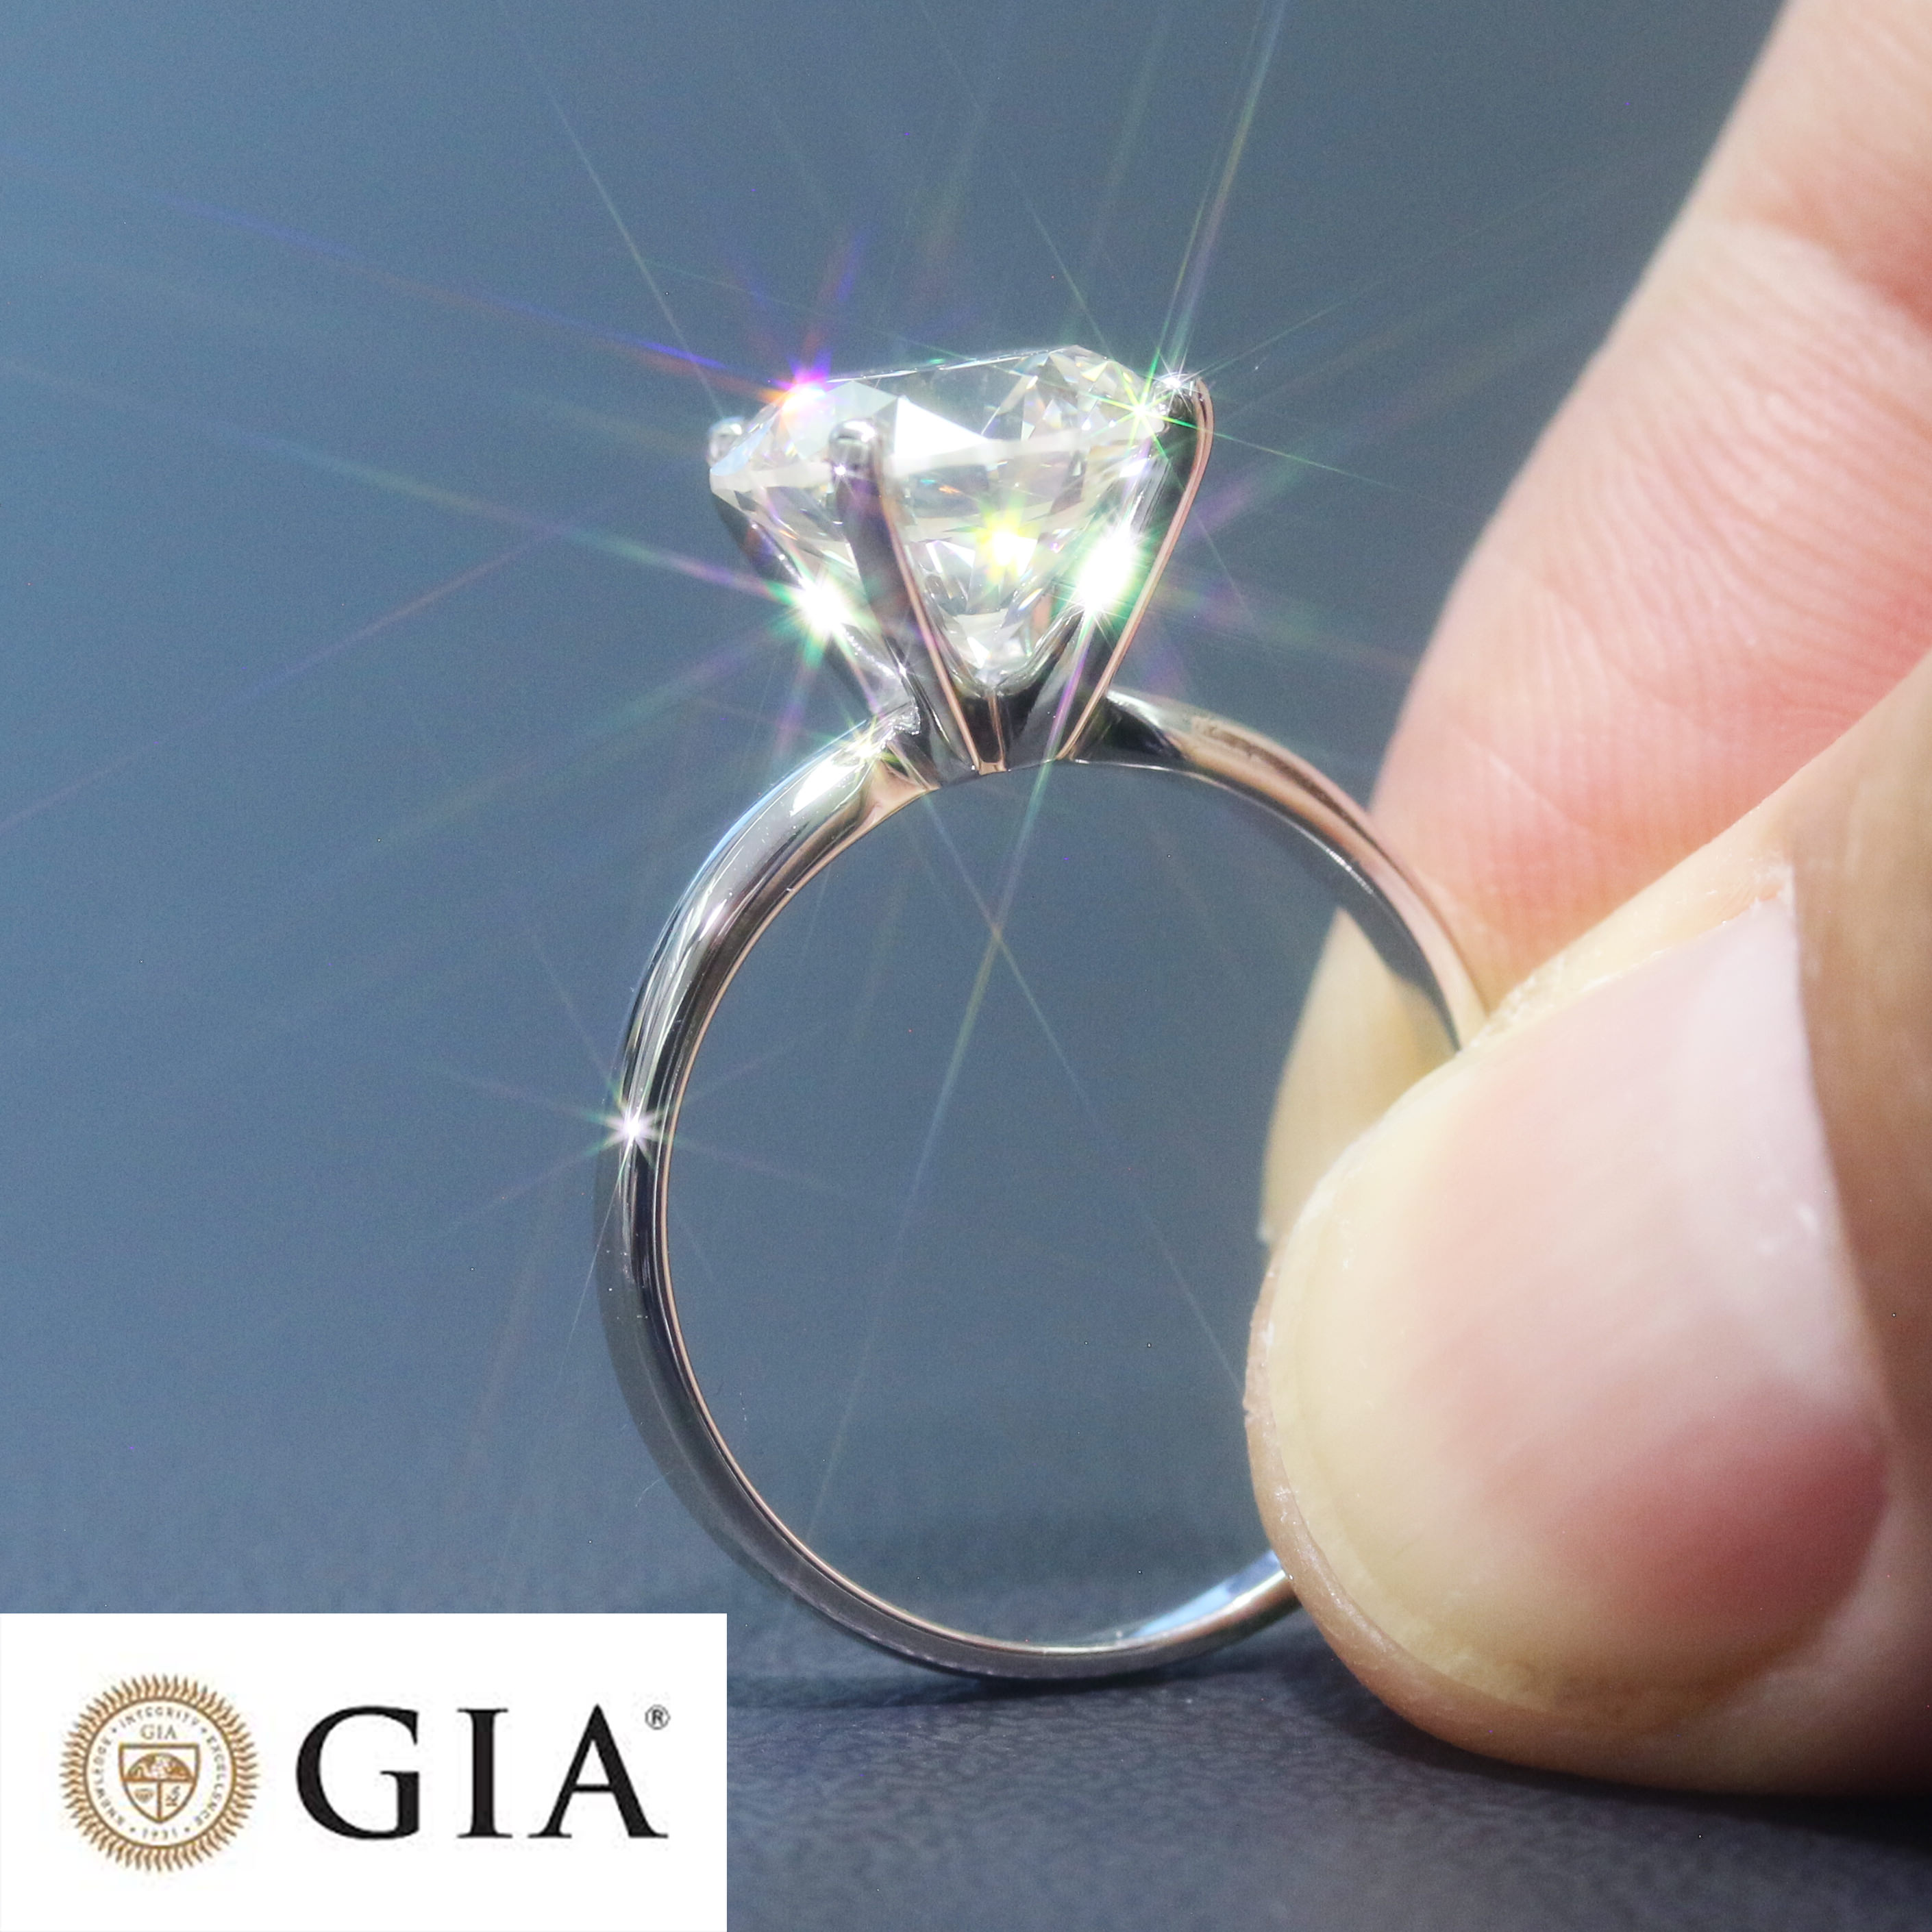 ring engagement rings g antique carats old in cert diamond certified cut with shoot accents gia i a carat products re platinum edwardian european